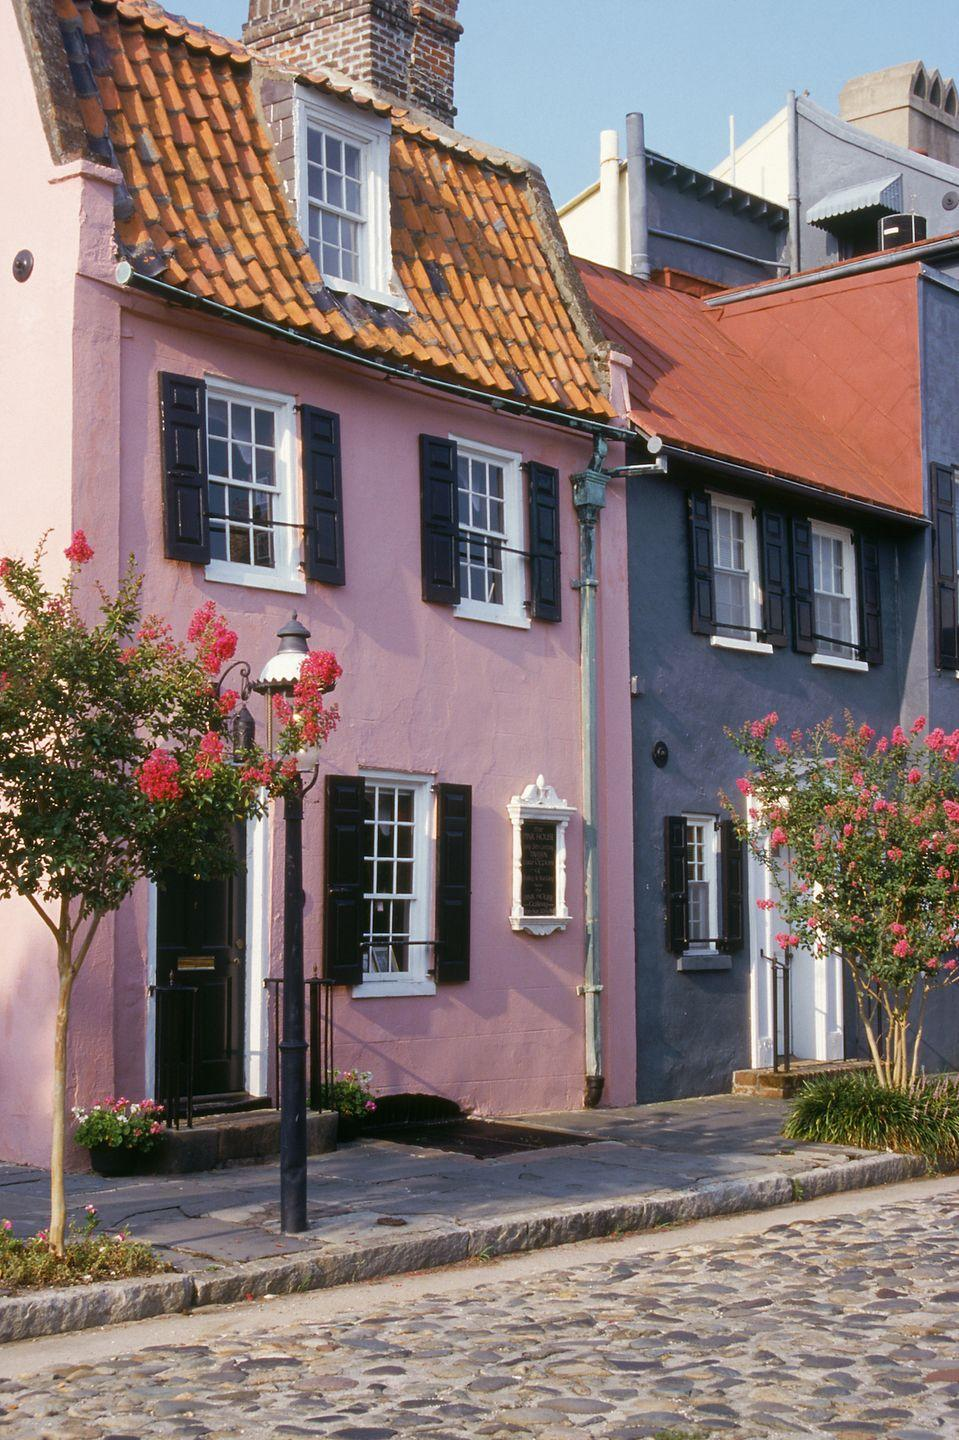 <p>A quaint cobblestone street with a pretty pink home.</p>